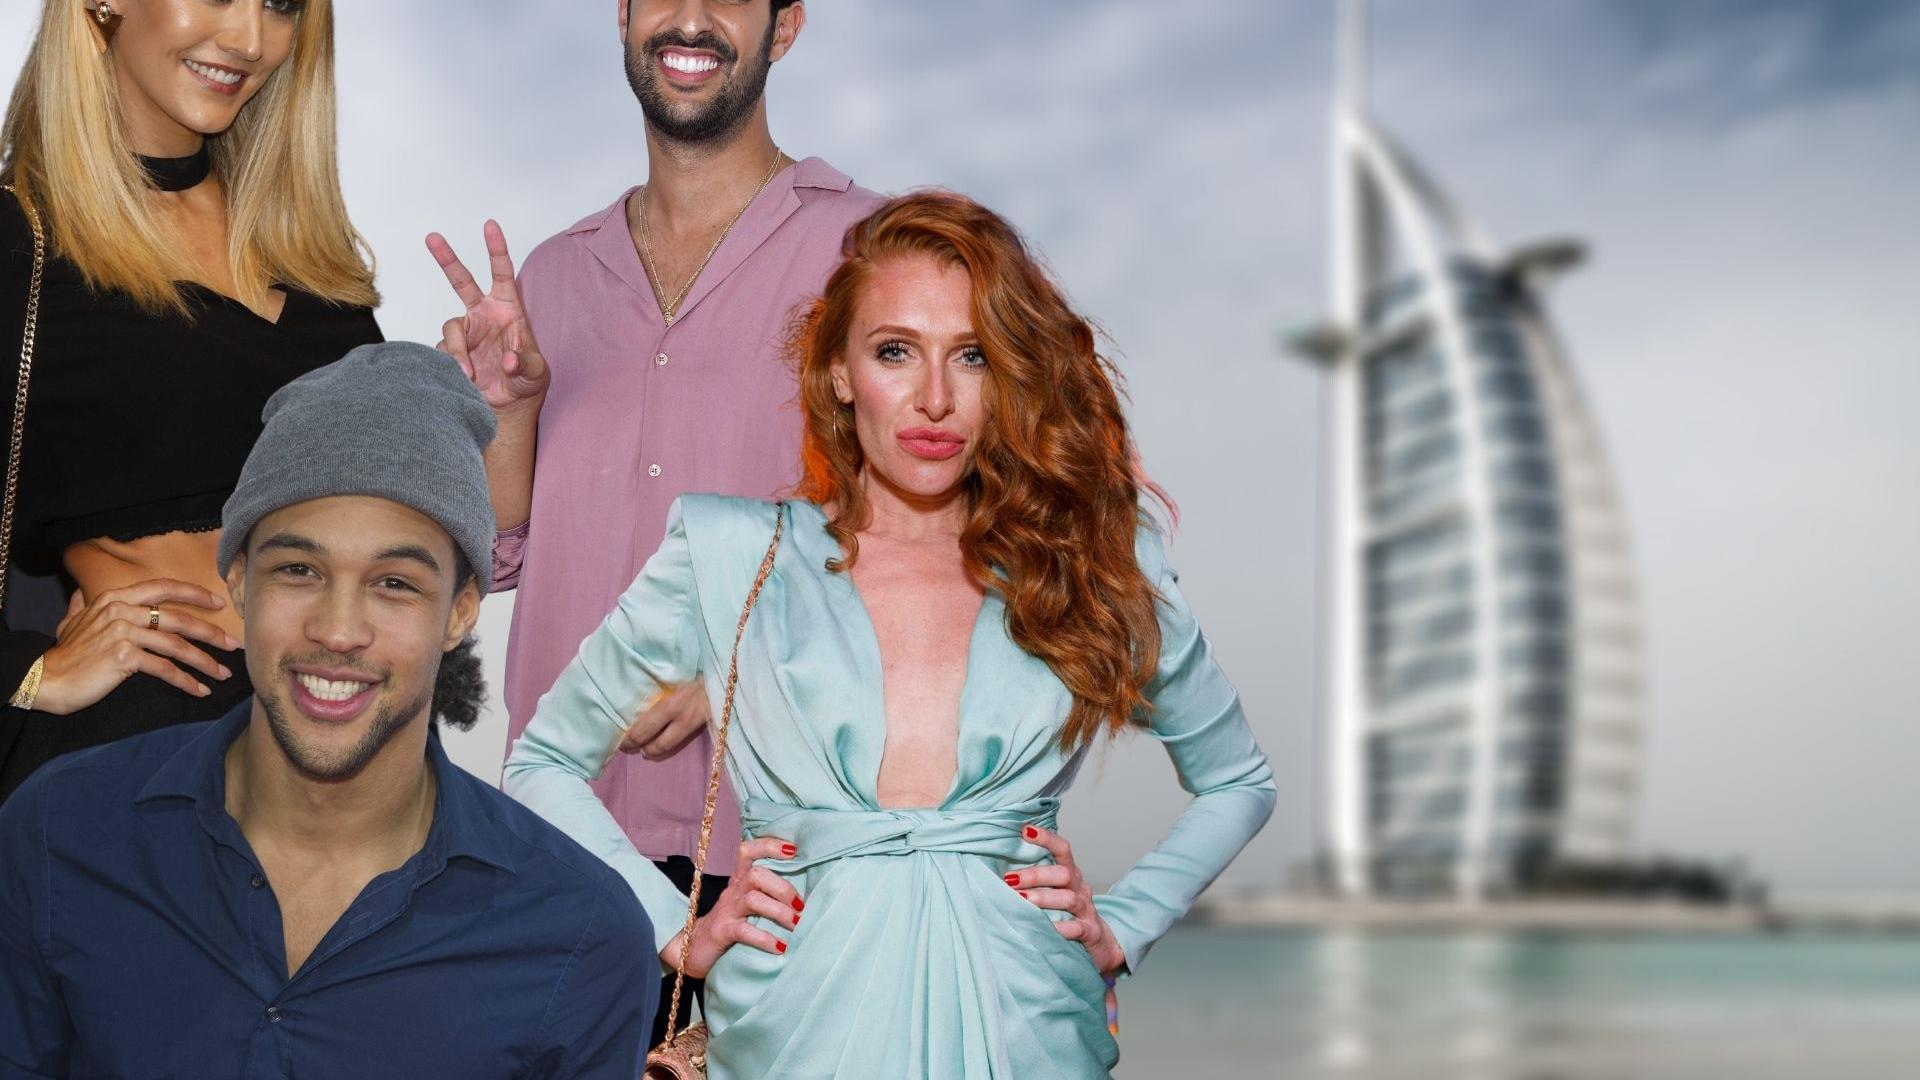 burj al arab influencer:innen